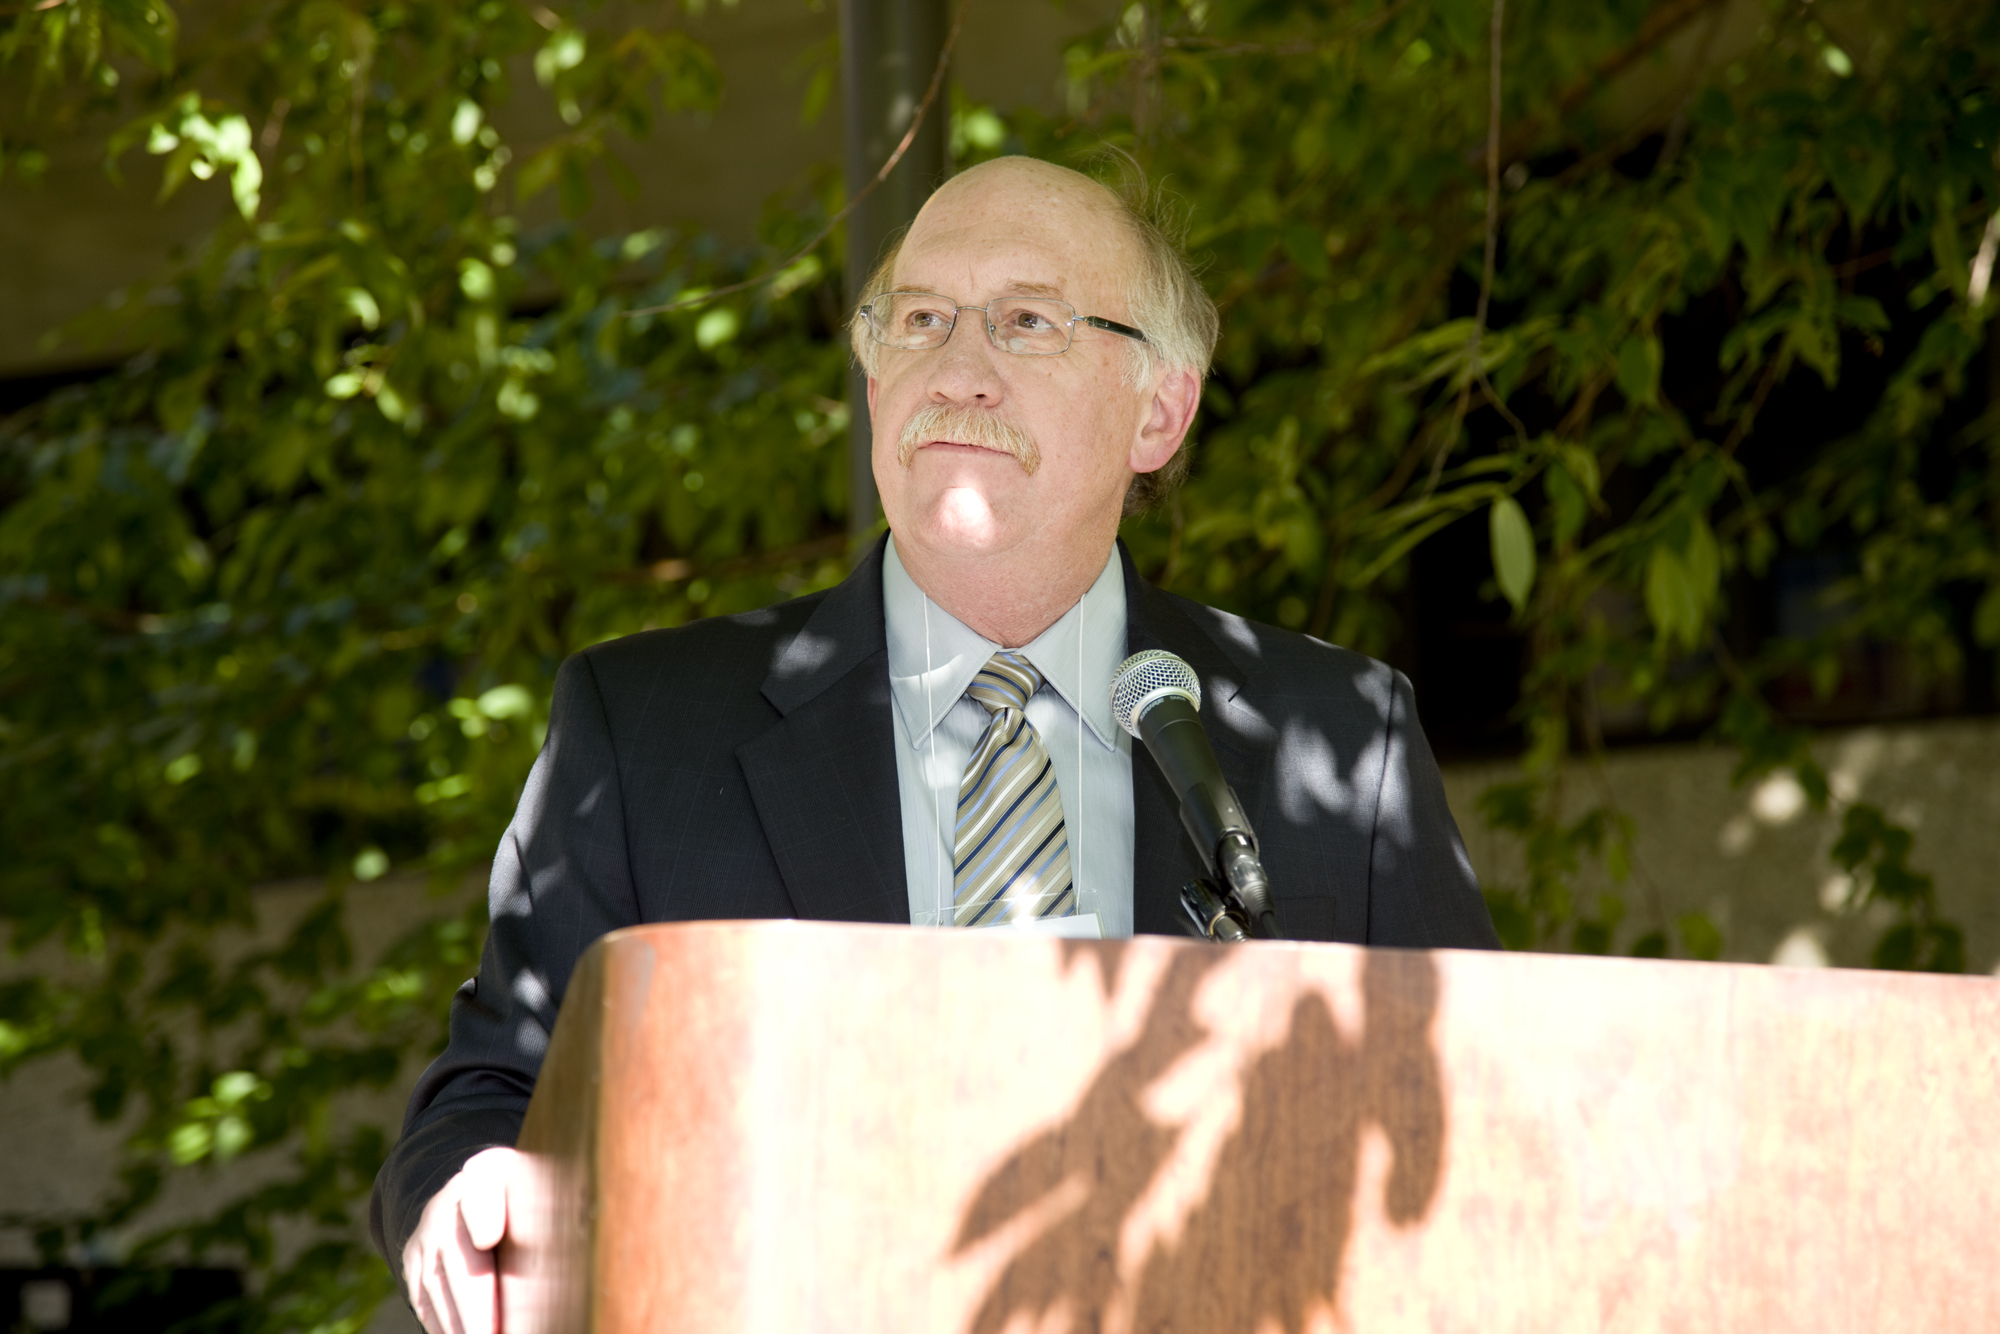 A photo of former Regional Duluth Campus Dean, Dr. Gary L. Davis giving a speech to a crowd during his time as Regional Dean.